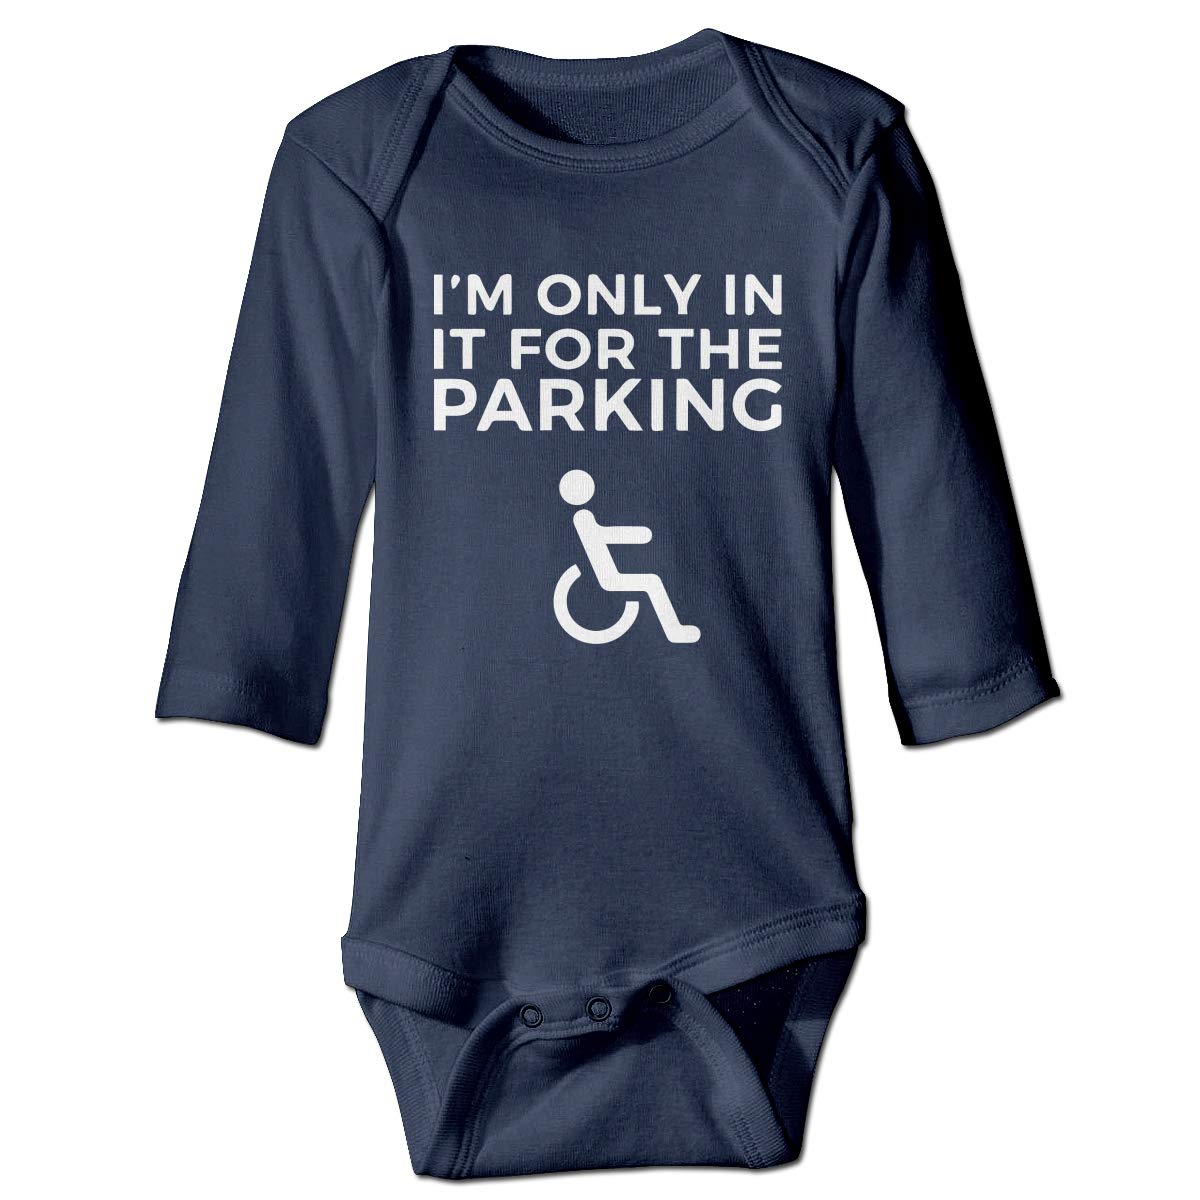 A14UBP Baby Infant Toddler Long Sleeve Baby Clothes Happy Fourth Yall Unisex Button Playsuit Outfit Clothes